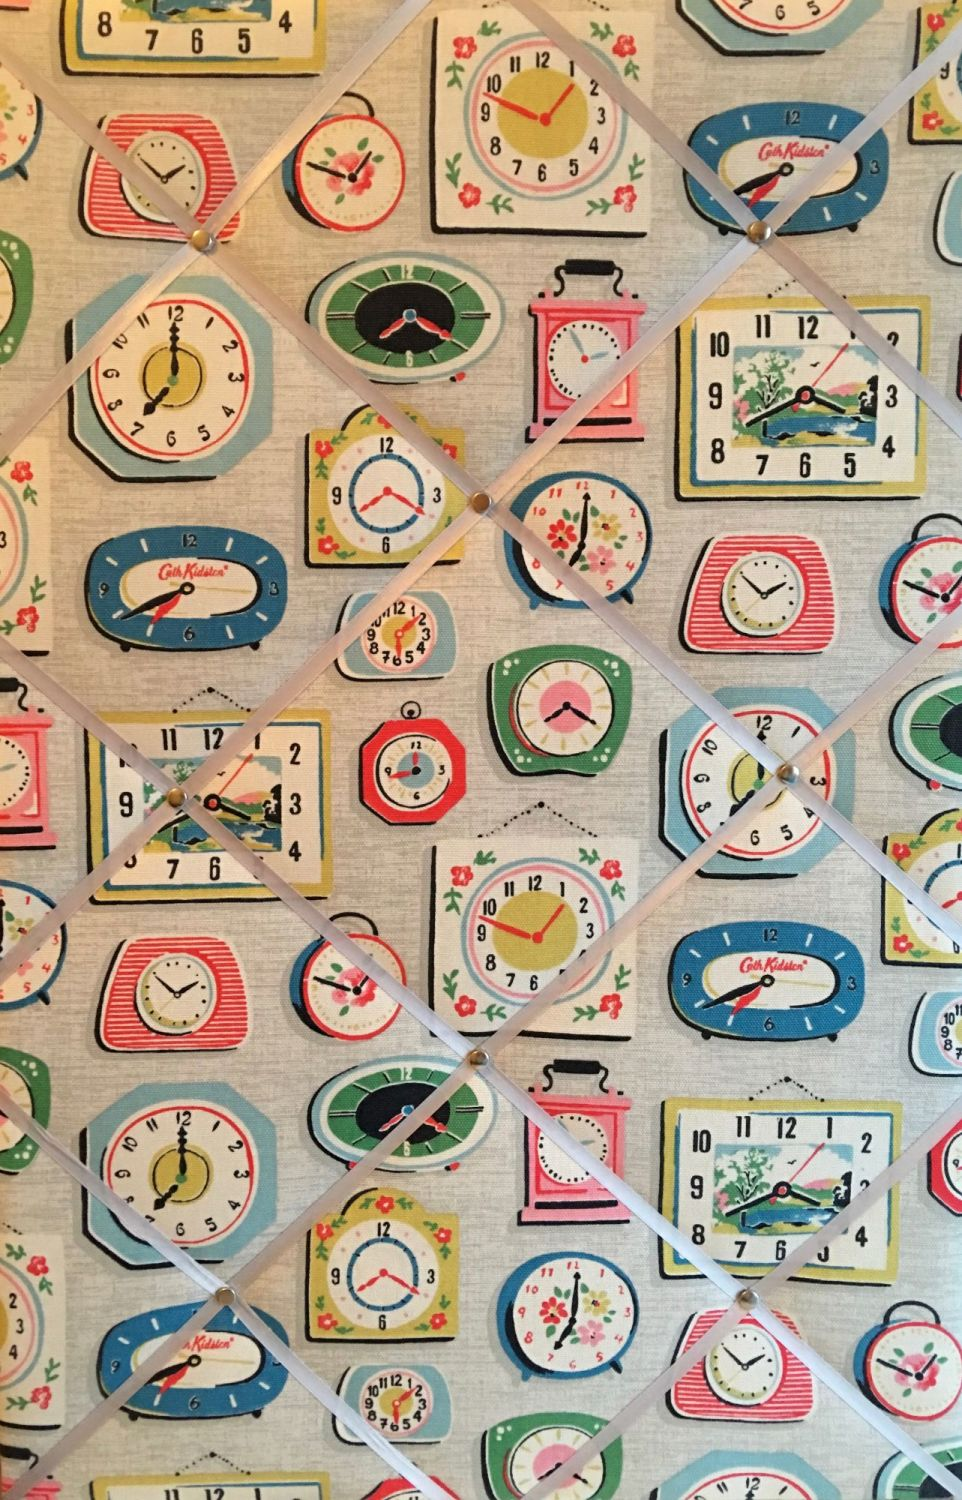 Large 60x40cm Cath Kidston Clocks Grey Vertical Hand Crafted Fabric Notice